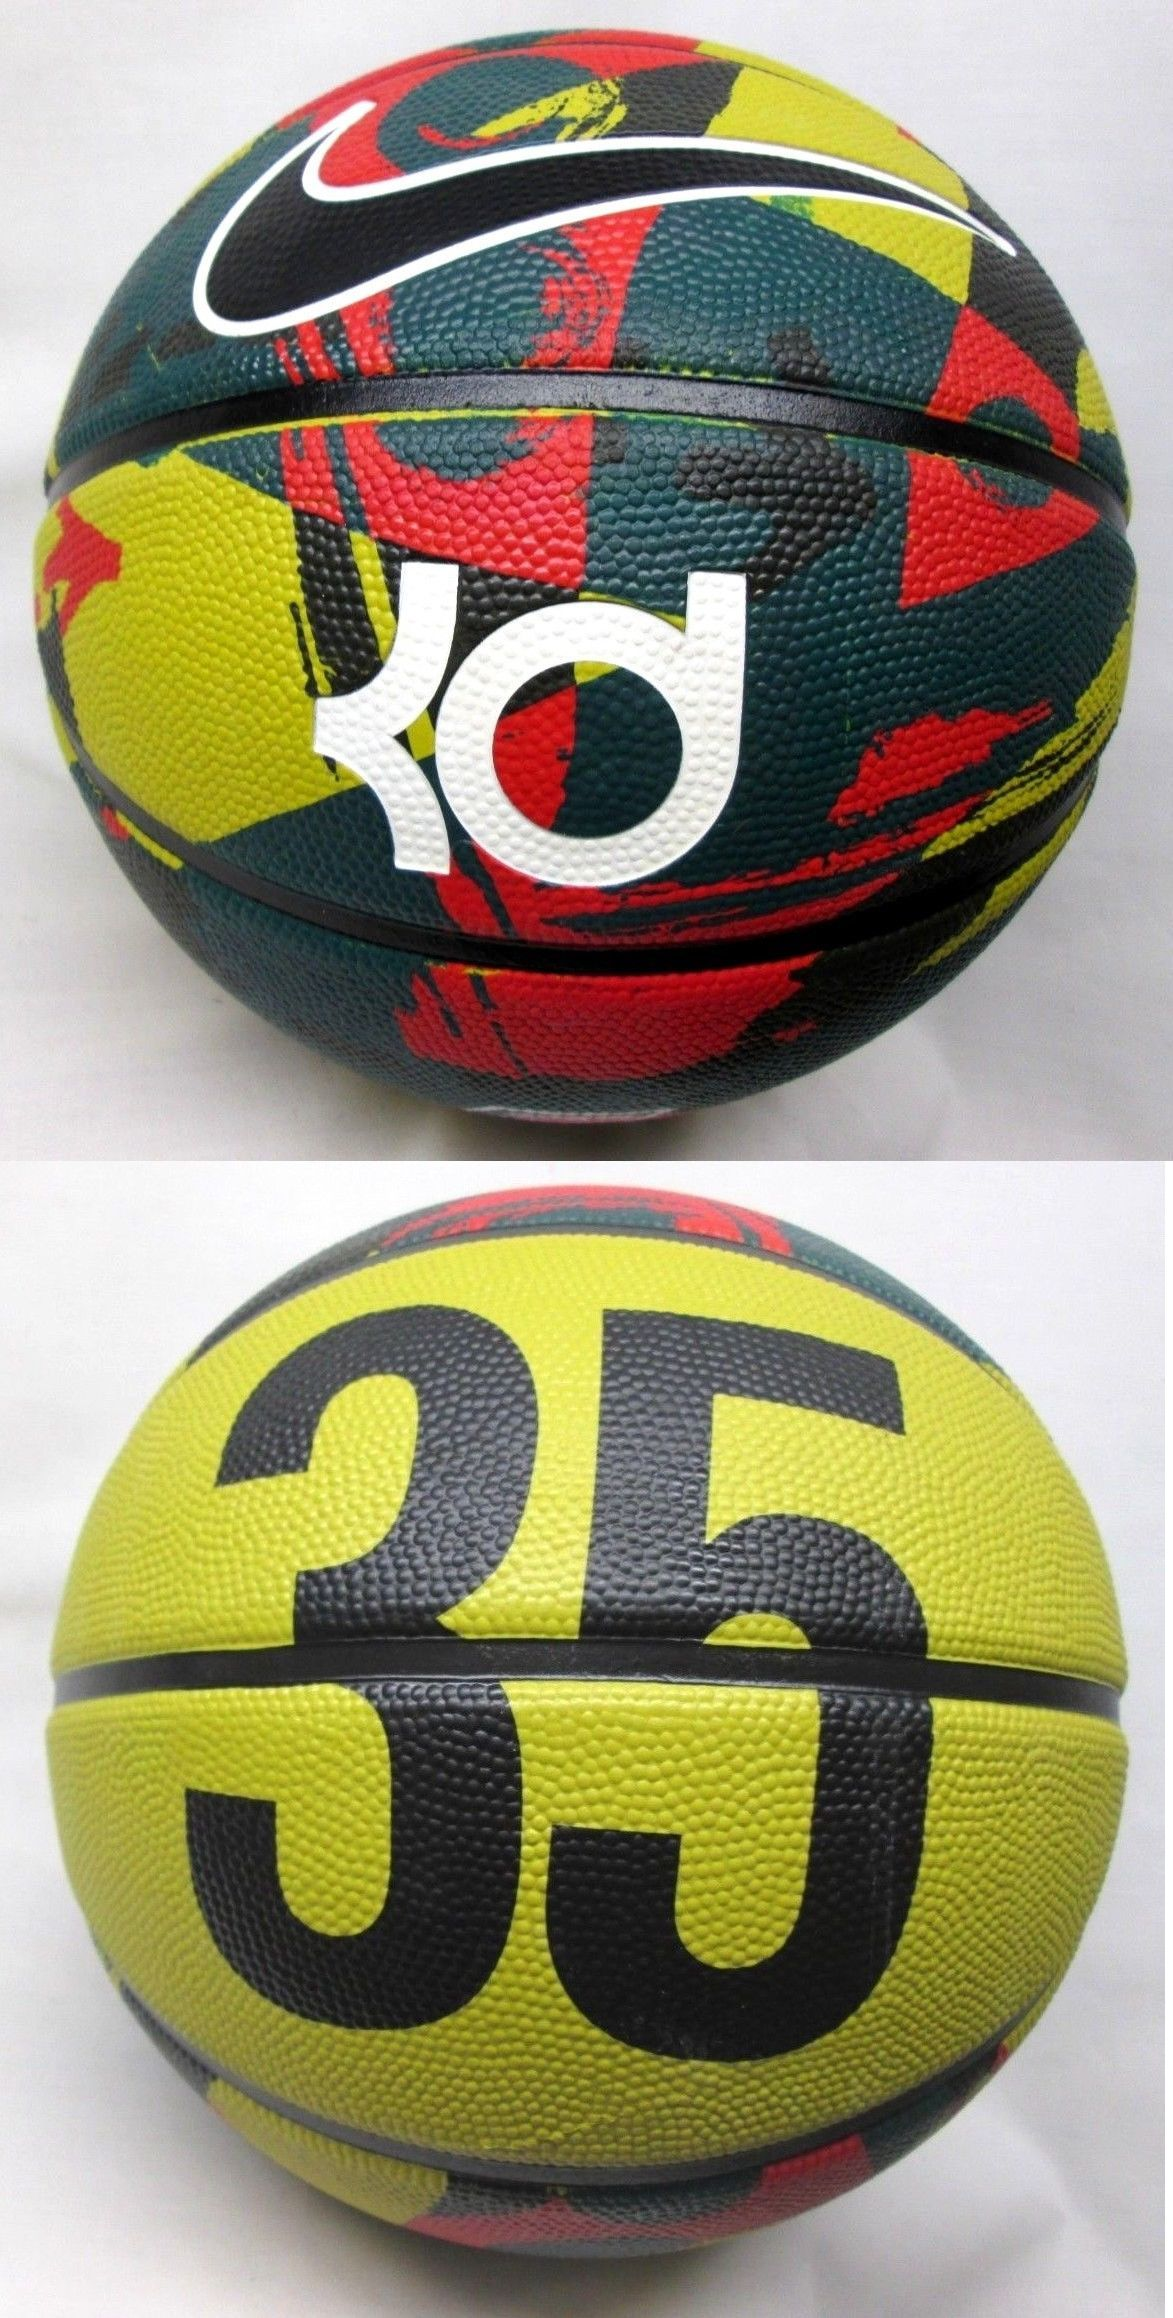 1c28a38ab55 Balls 21208  Nike Nki1398506 Kd Playground Basketball Mid Size 28.5 Multi  Colors -  BUY IT NOW ONLY   25 on eBay!